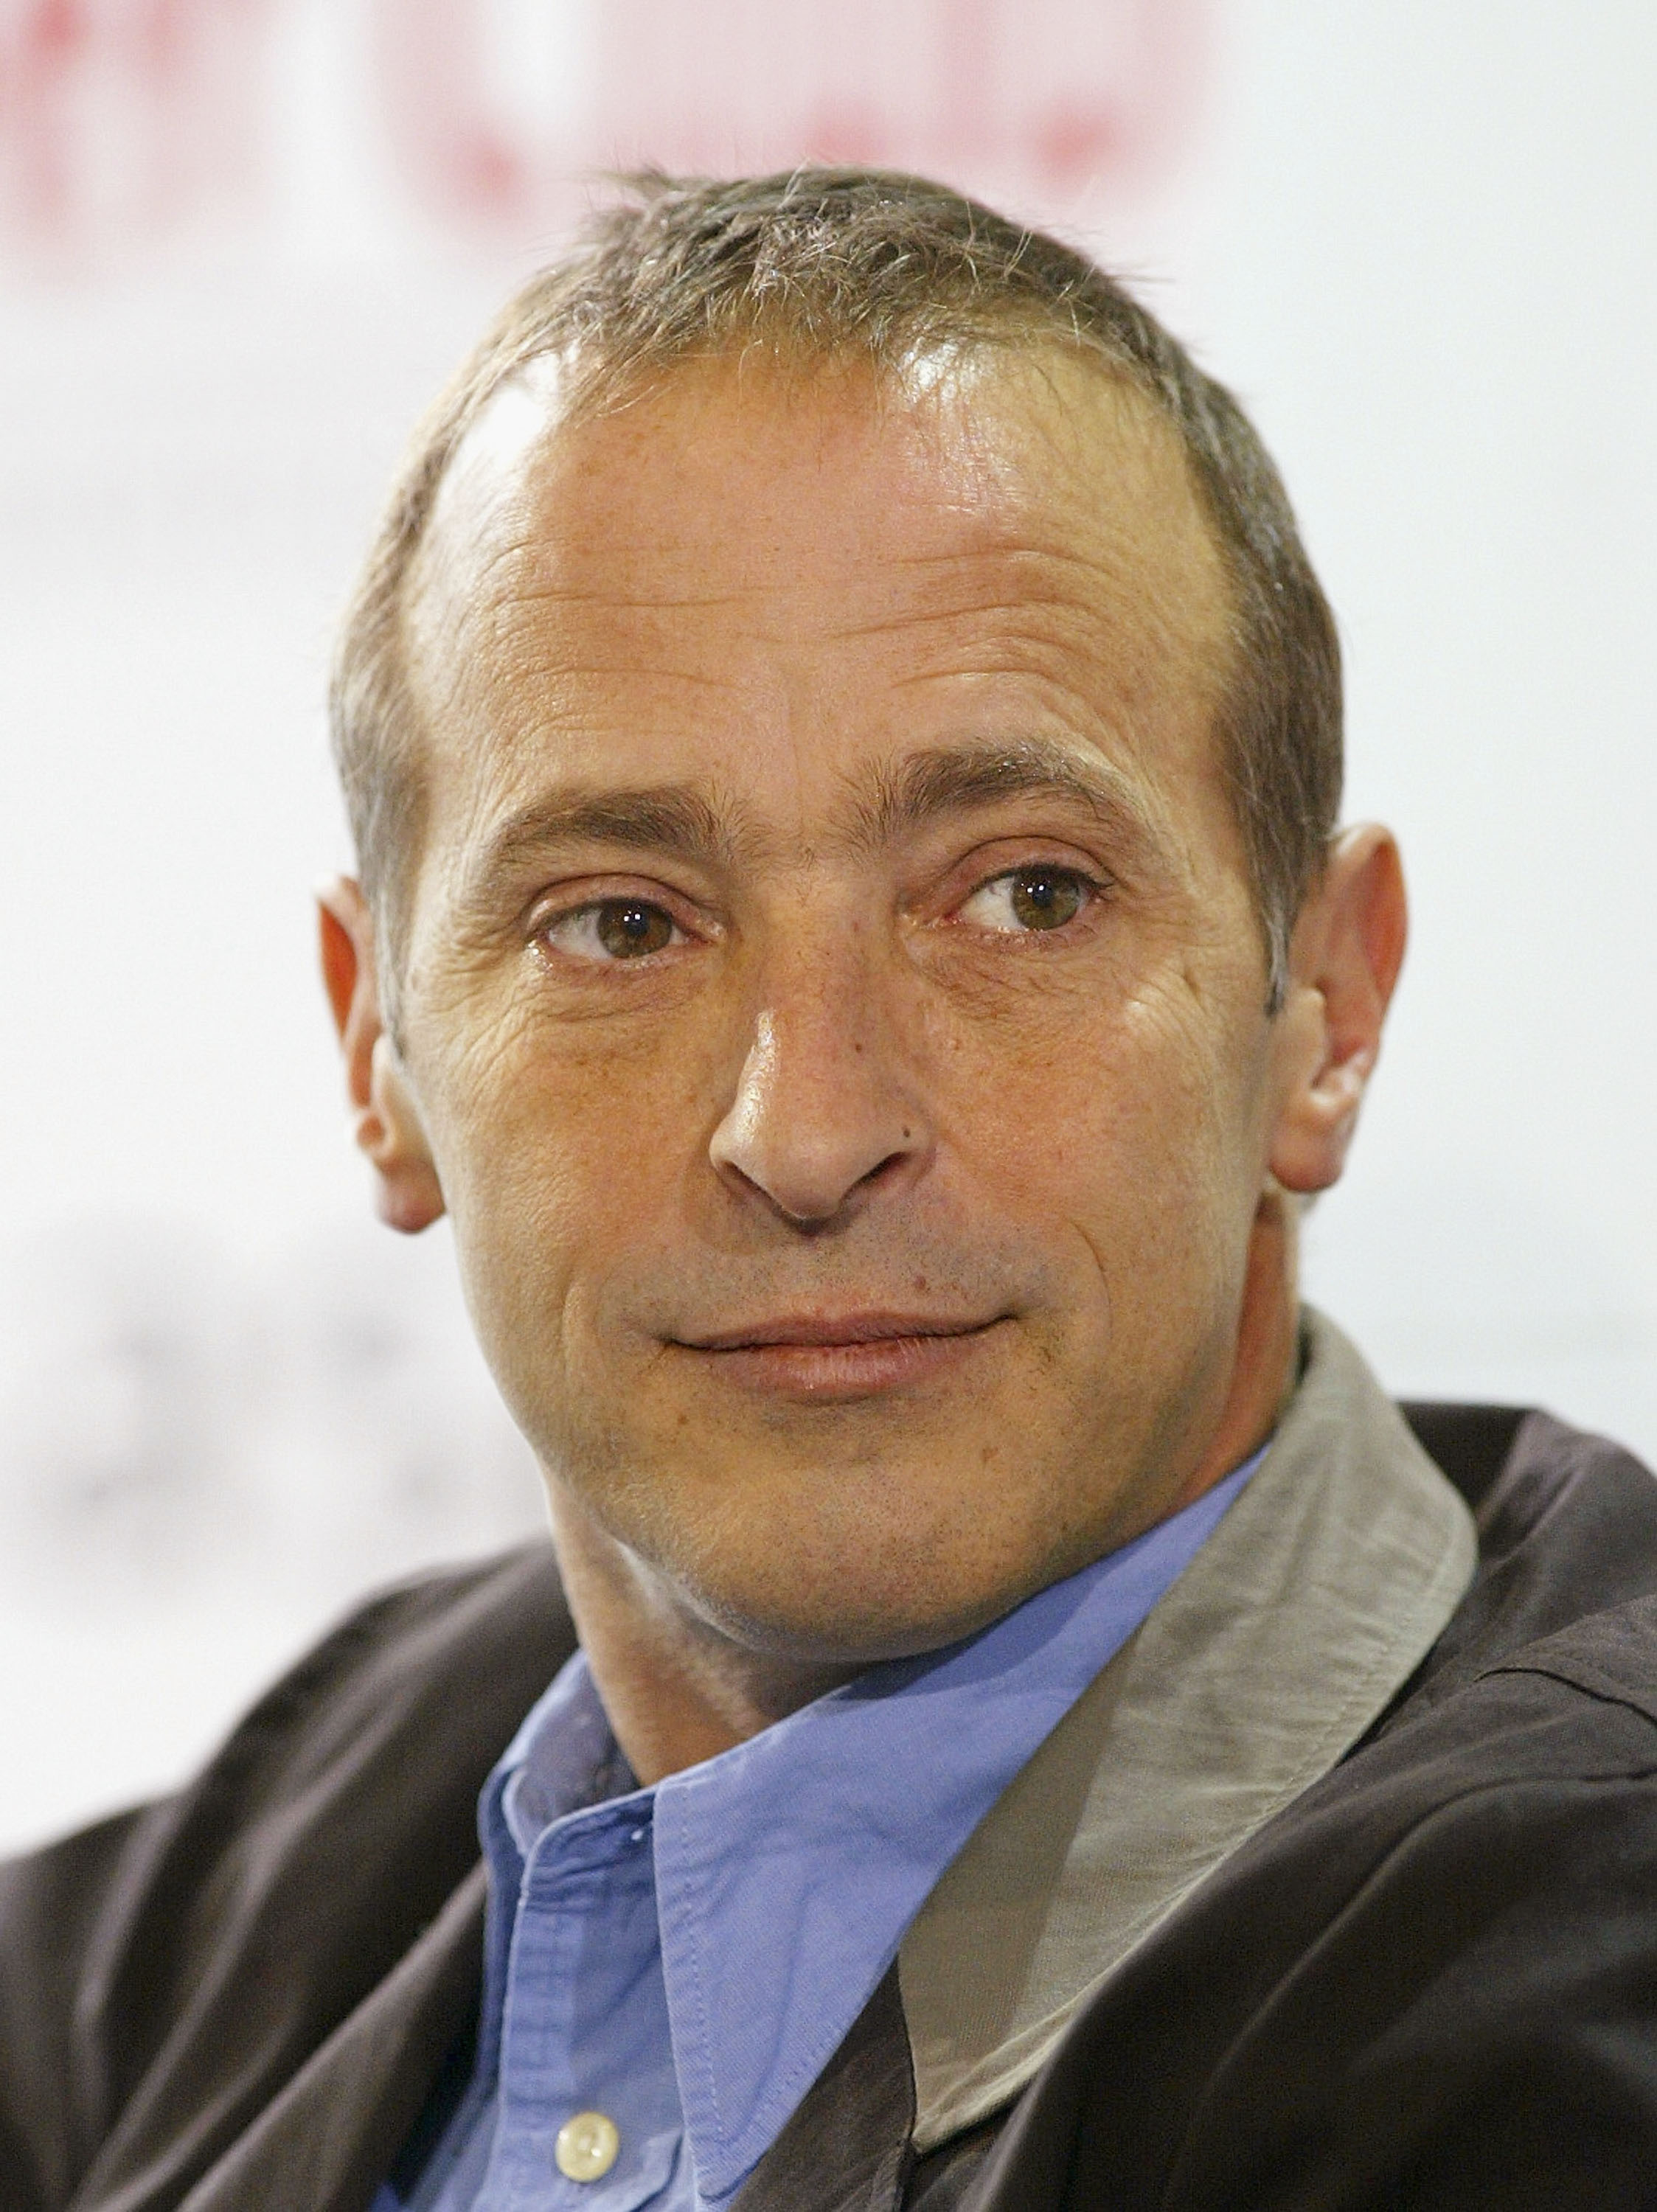 of david sedaris funniest essays ralph orlowski getty images entertainment getty images